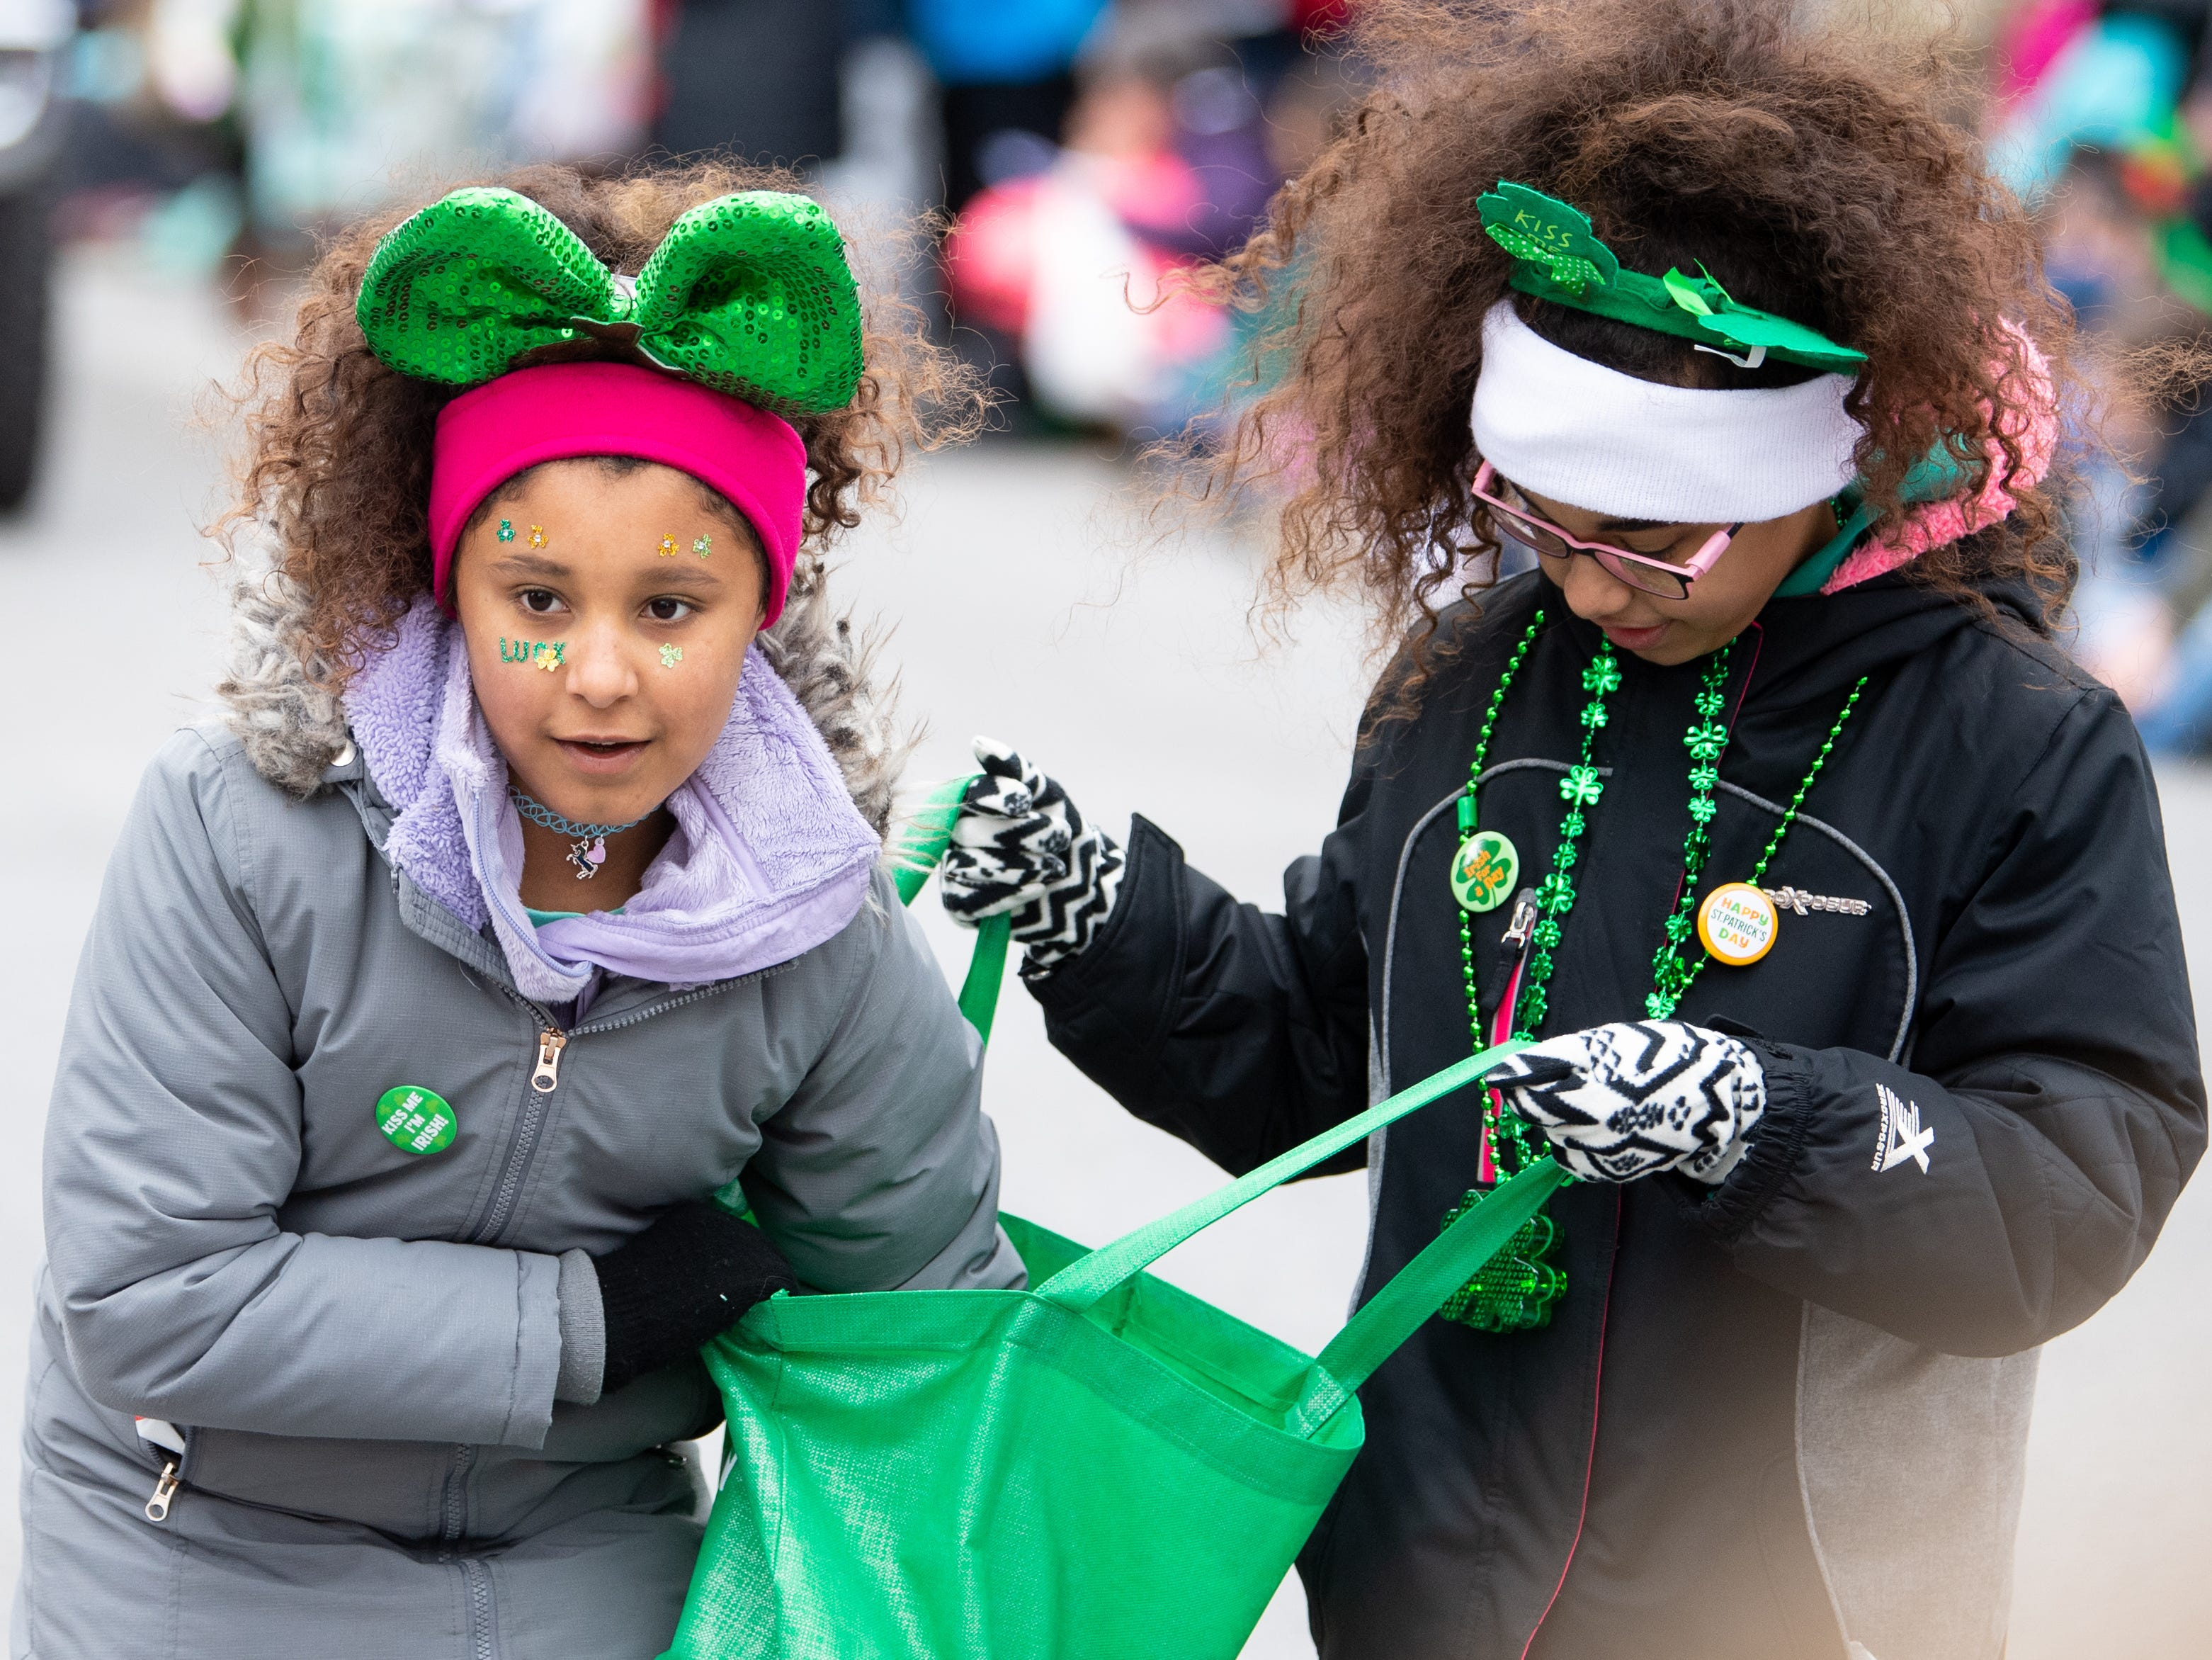 Action from the 36th Annual St. Patrick's Day Parade in York City, March 16, 2019.